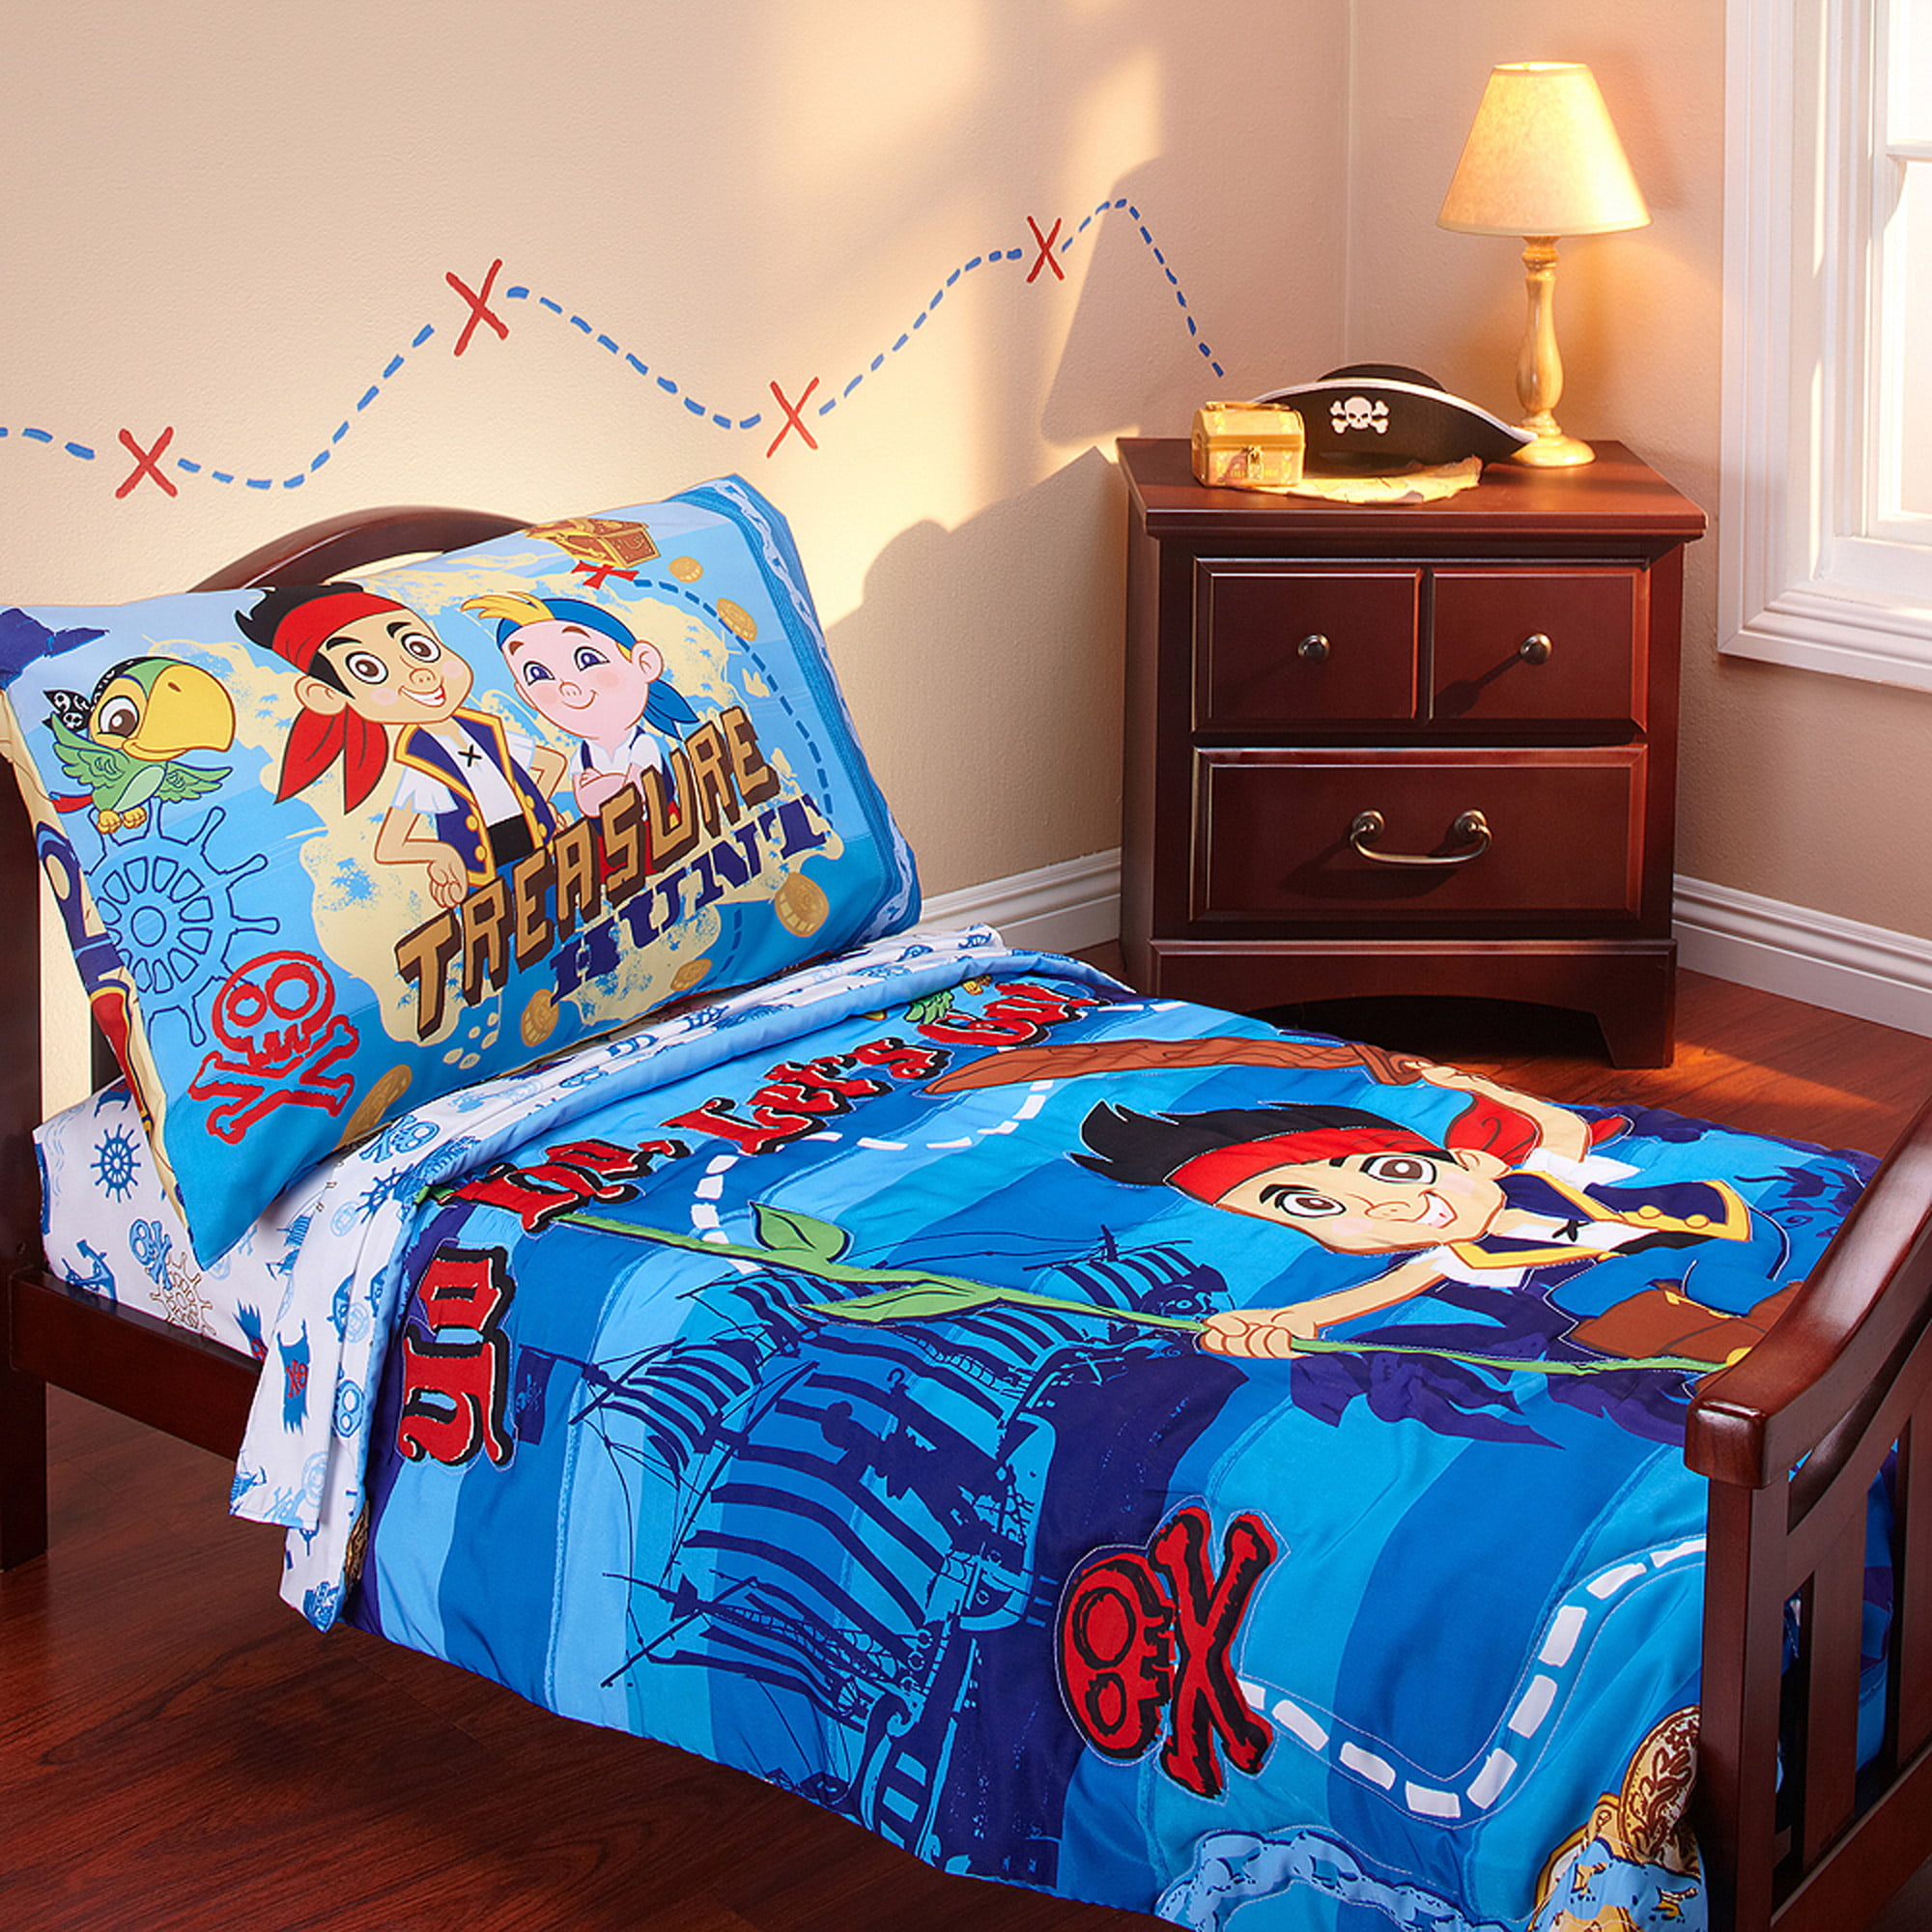 disney finding dory bed in a bag 5 piece twin bedding set with disney finding dory bed in a bag 5 piece twin bedding set with bonus tote walmart com